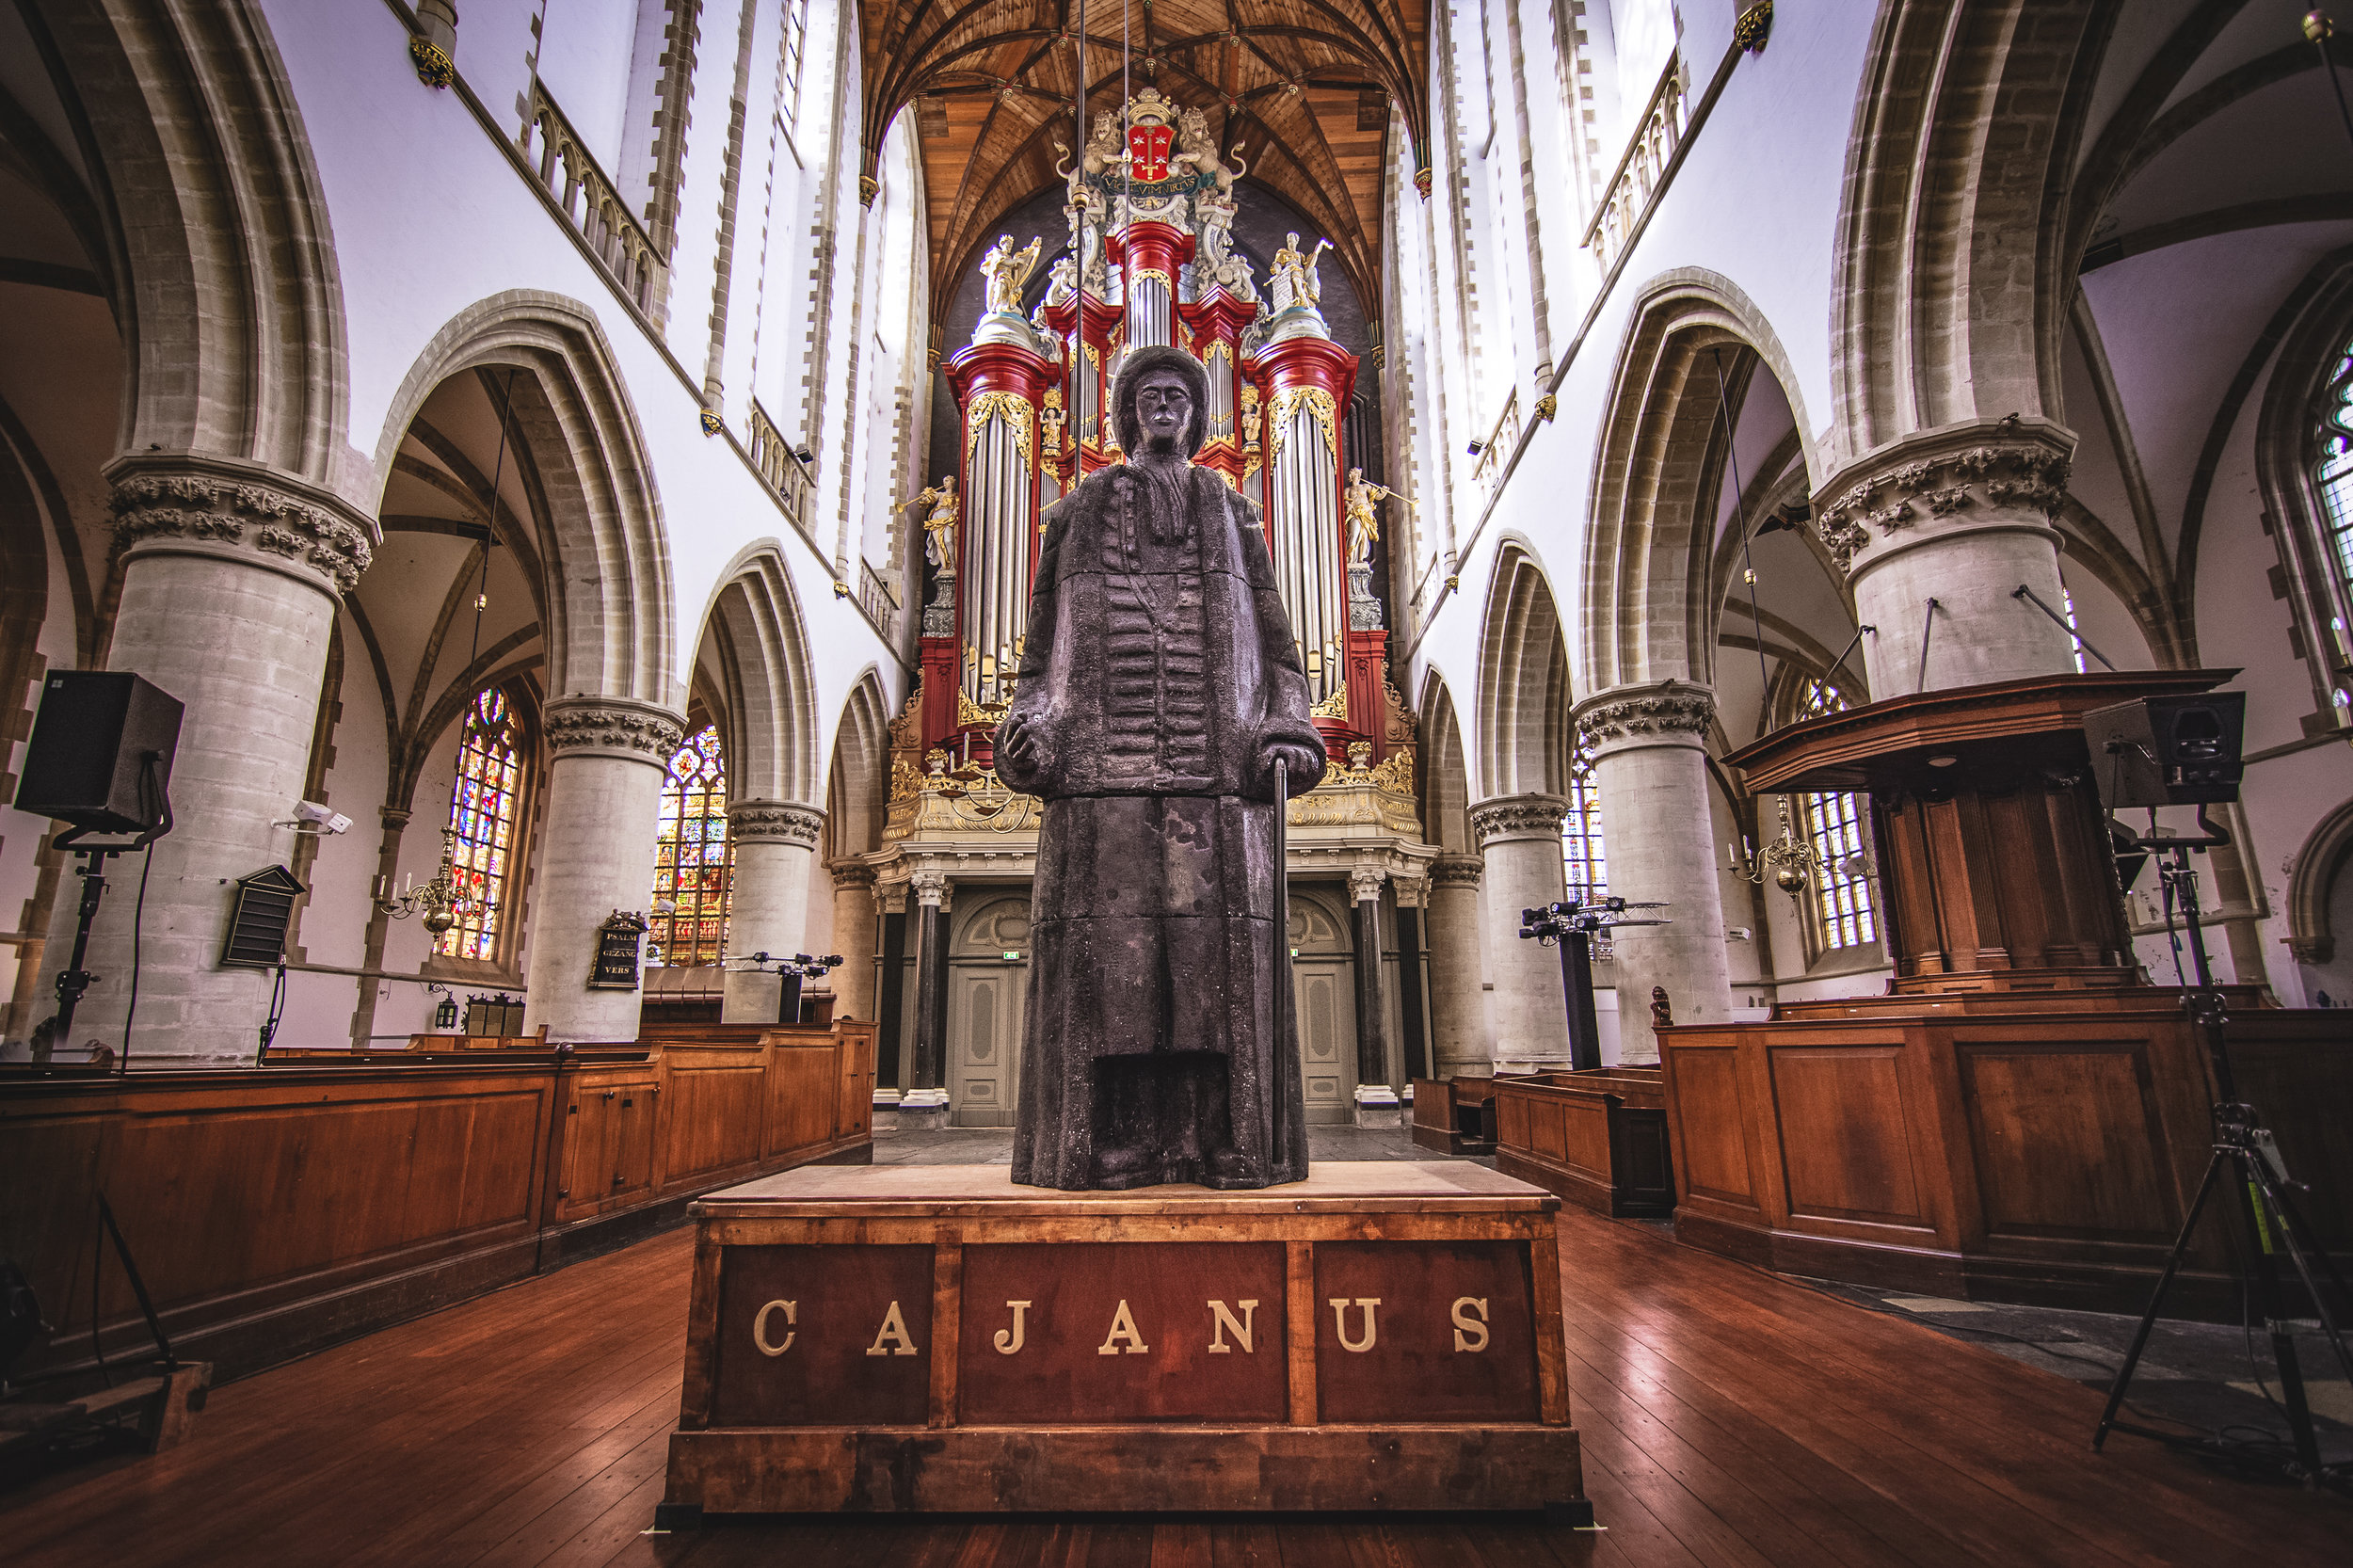 The burial place of a beloved giant named Cajanus at the church in Haarlem.